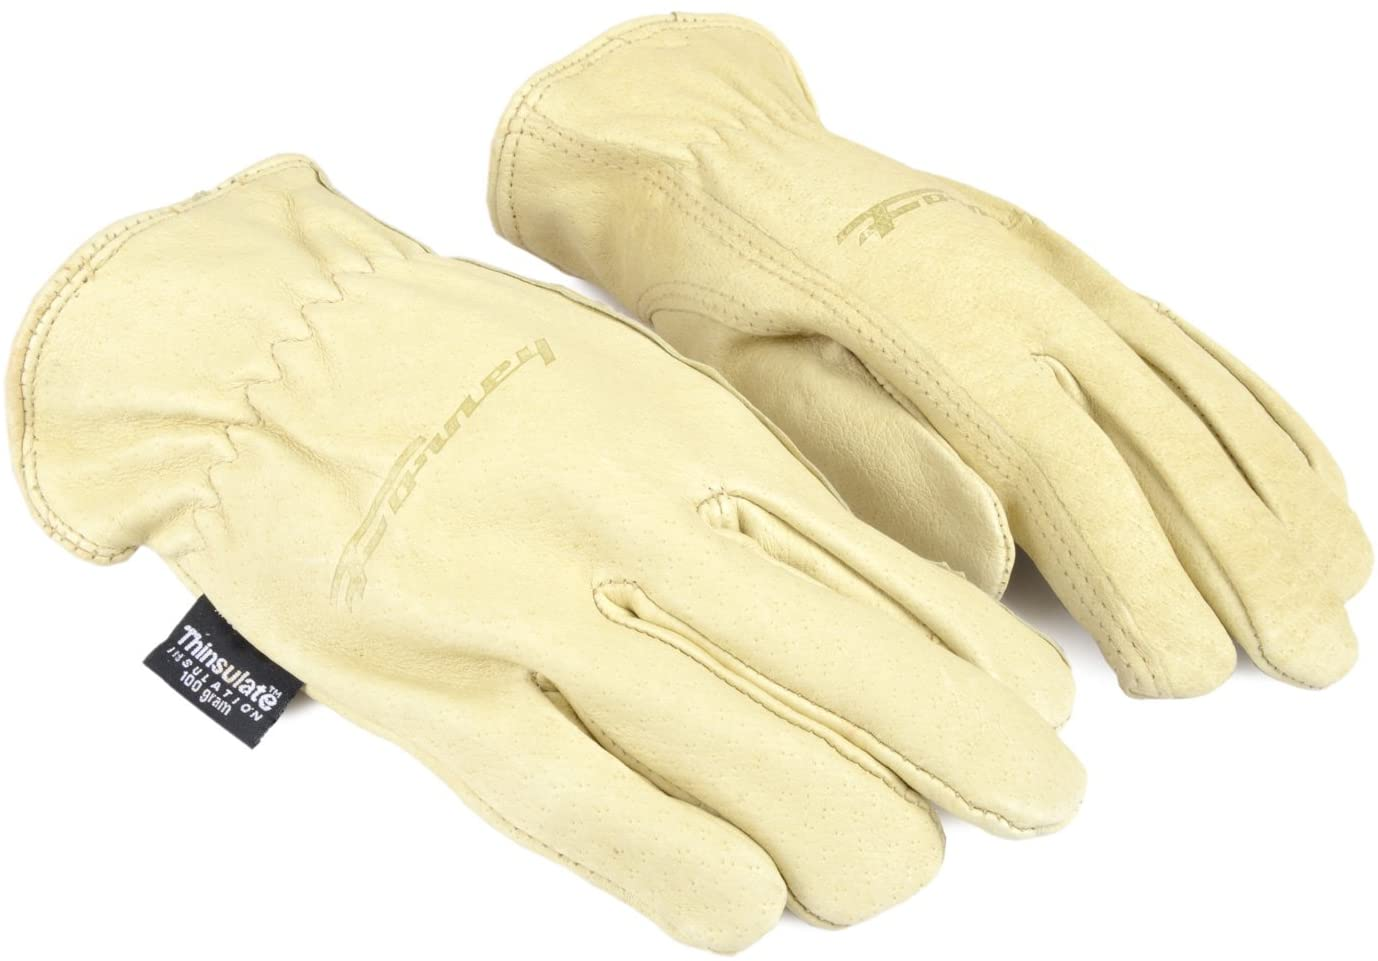 Forney 53166 Pigskin Leather Driver Premium Lined Women's Gloves, Chrome Tanned,Small